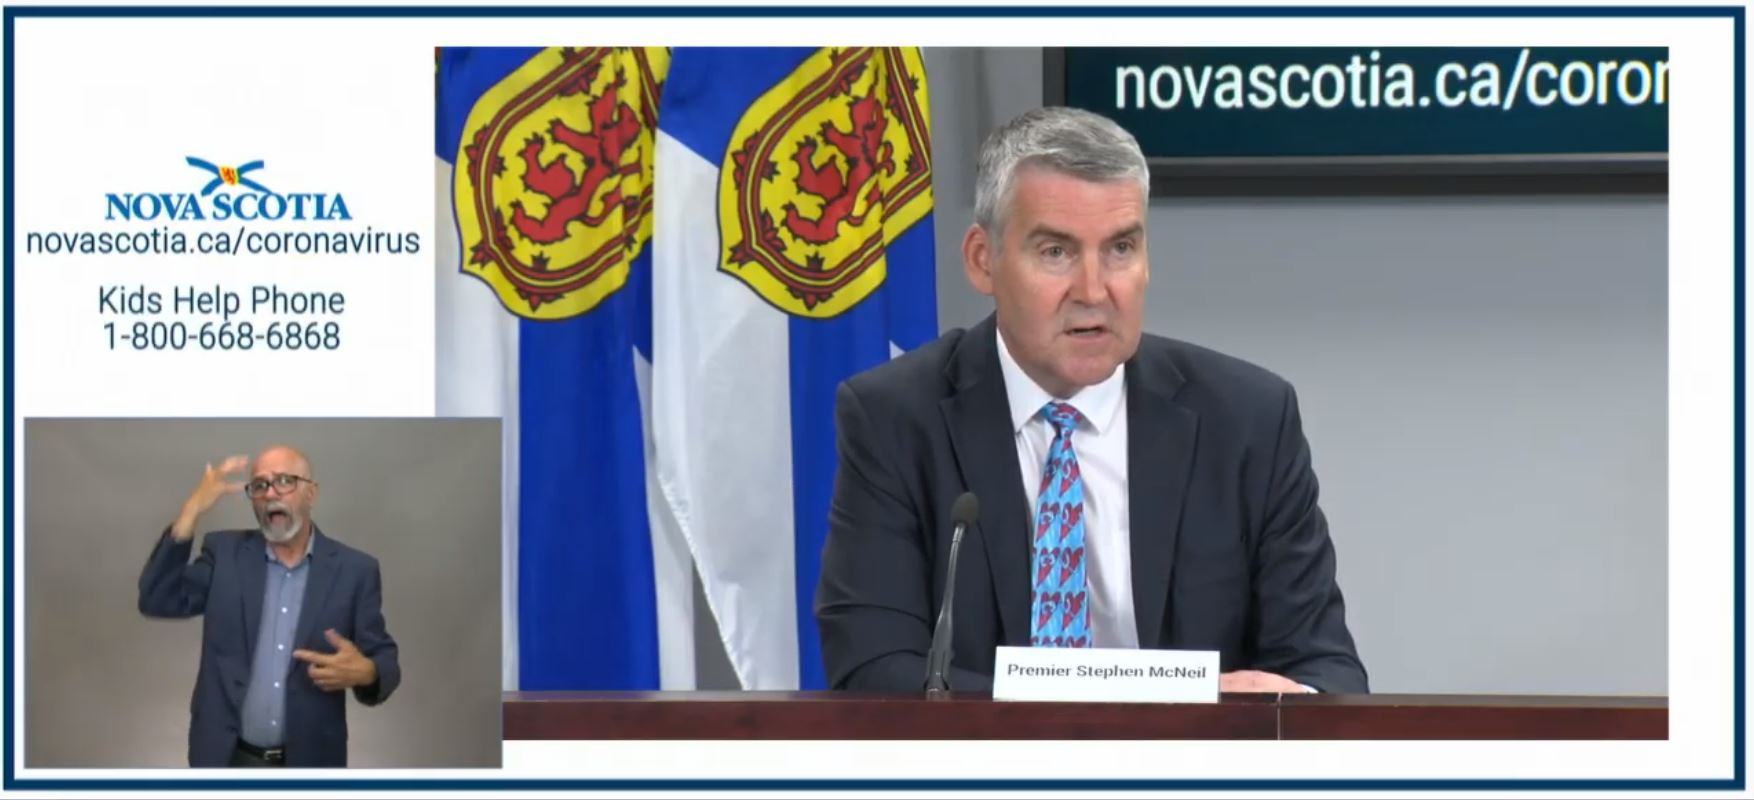 Nova Scotia Eases More Restrictions And Will Increase Gathering Limits For Organized Events Halifaxtoday Ca